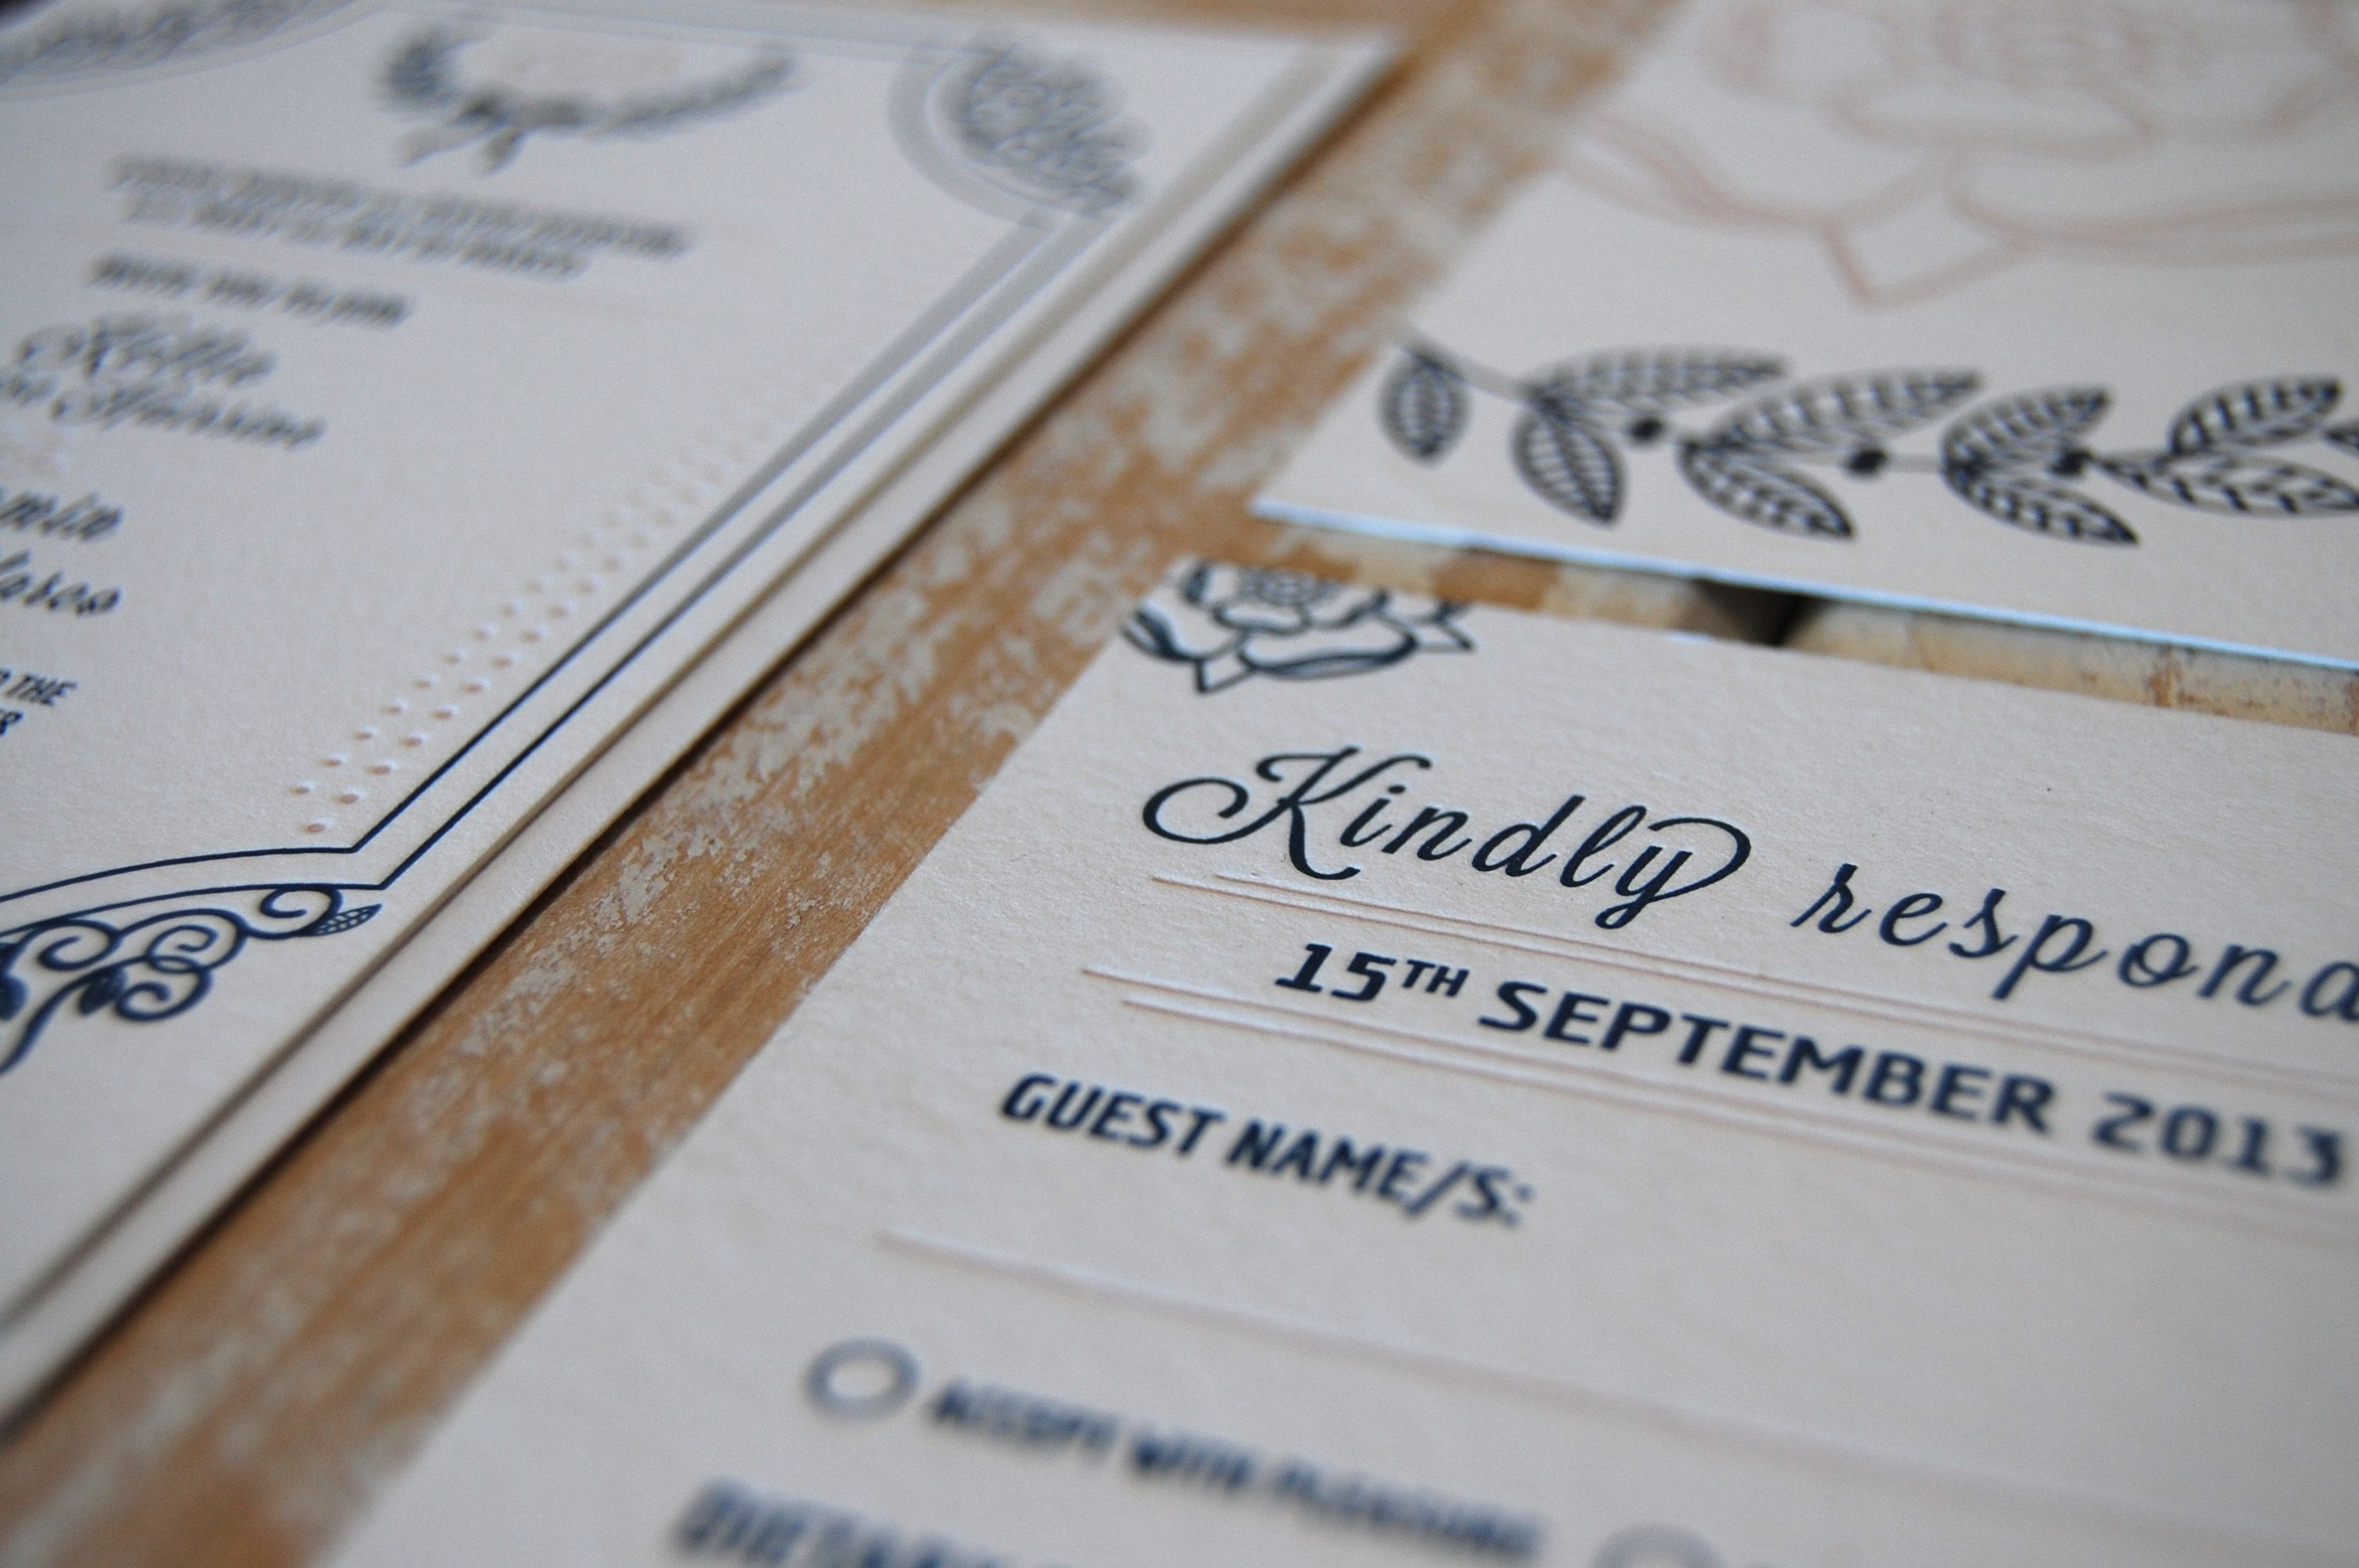 Yorkshire Rose {Letterpress} {Designed and Printed by Little Peach Co.}   Ben & Kellie's invitation design marries vintage elements with a yorkshire rose and subtle hints of the groom's Italian heritage.   Printing: One Colour on Crane & Co. 100% Cotton Lettra 300gsm in Pearl White.